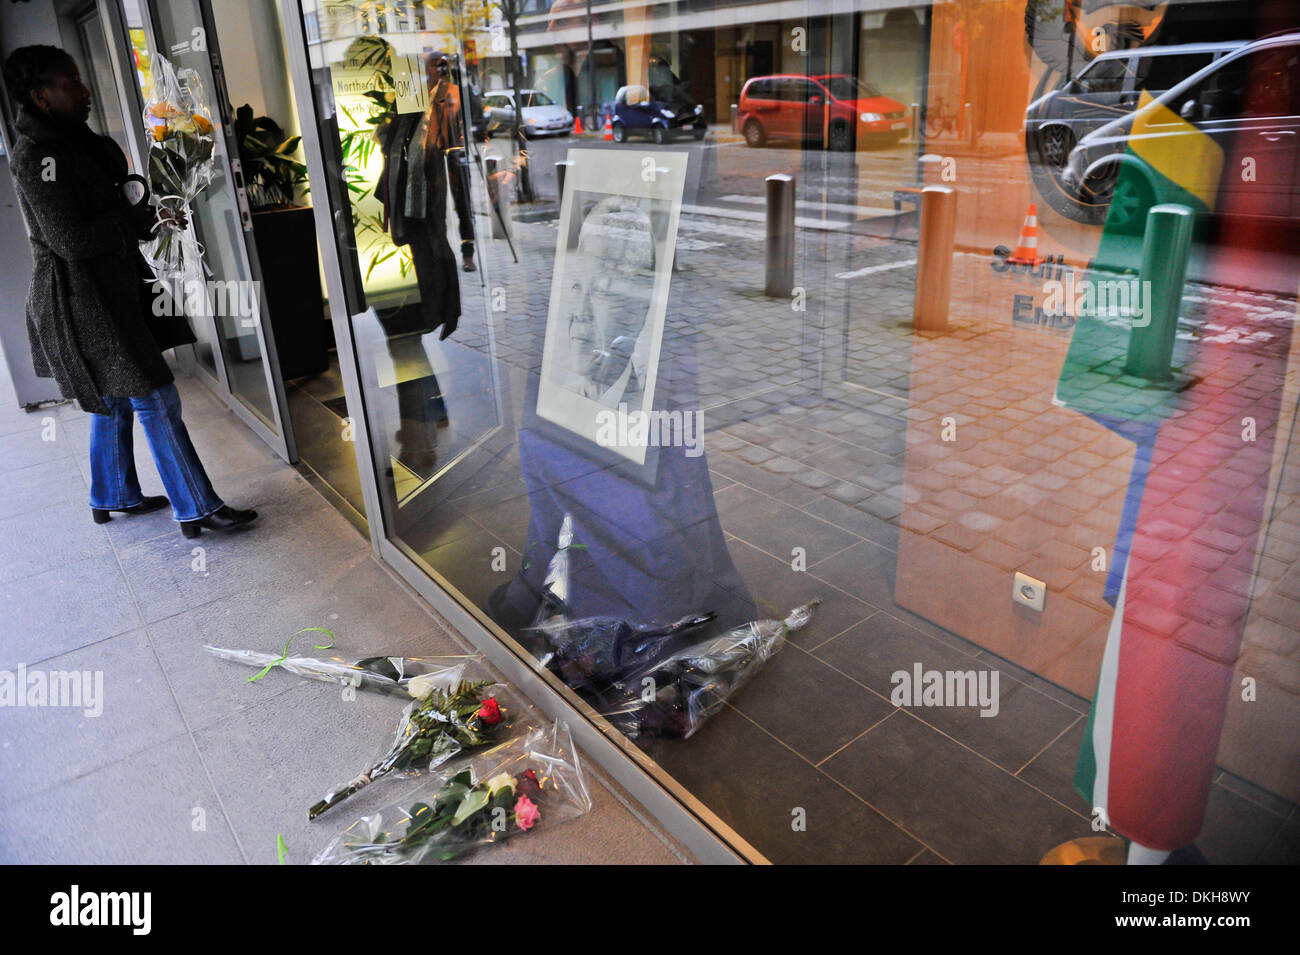 Brussels, Belgium. 6th December 2013. A woman holding a bunch of flowers walks into South African embassy in Brussels, capital of Belgium, Dec 6, 2013. Condolence messages are pouring in for the late former South African president from all over the world on Friday. (Xinhua/Ye Pingfan/Alamy Live News) - Stock Image